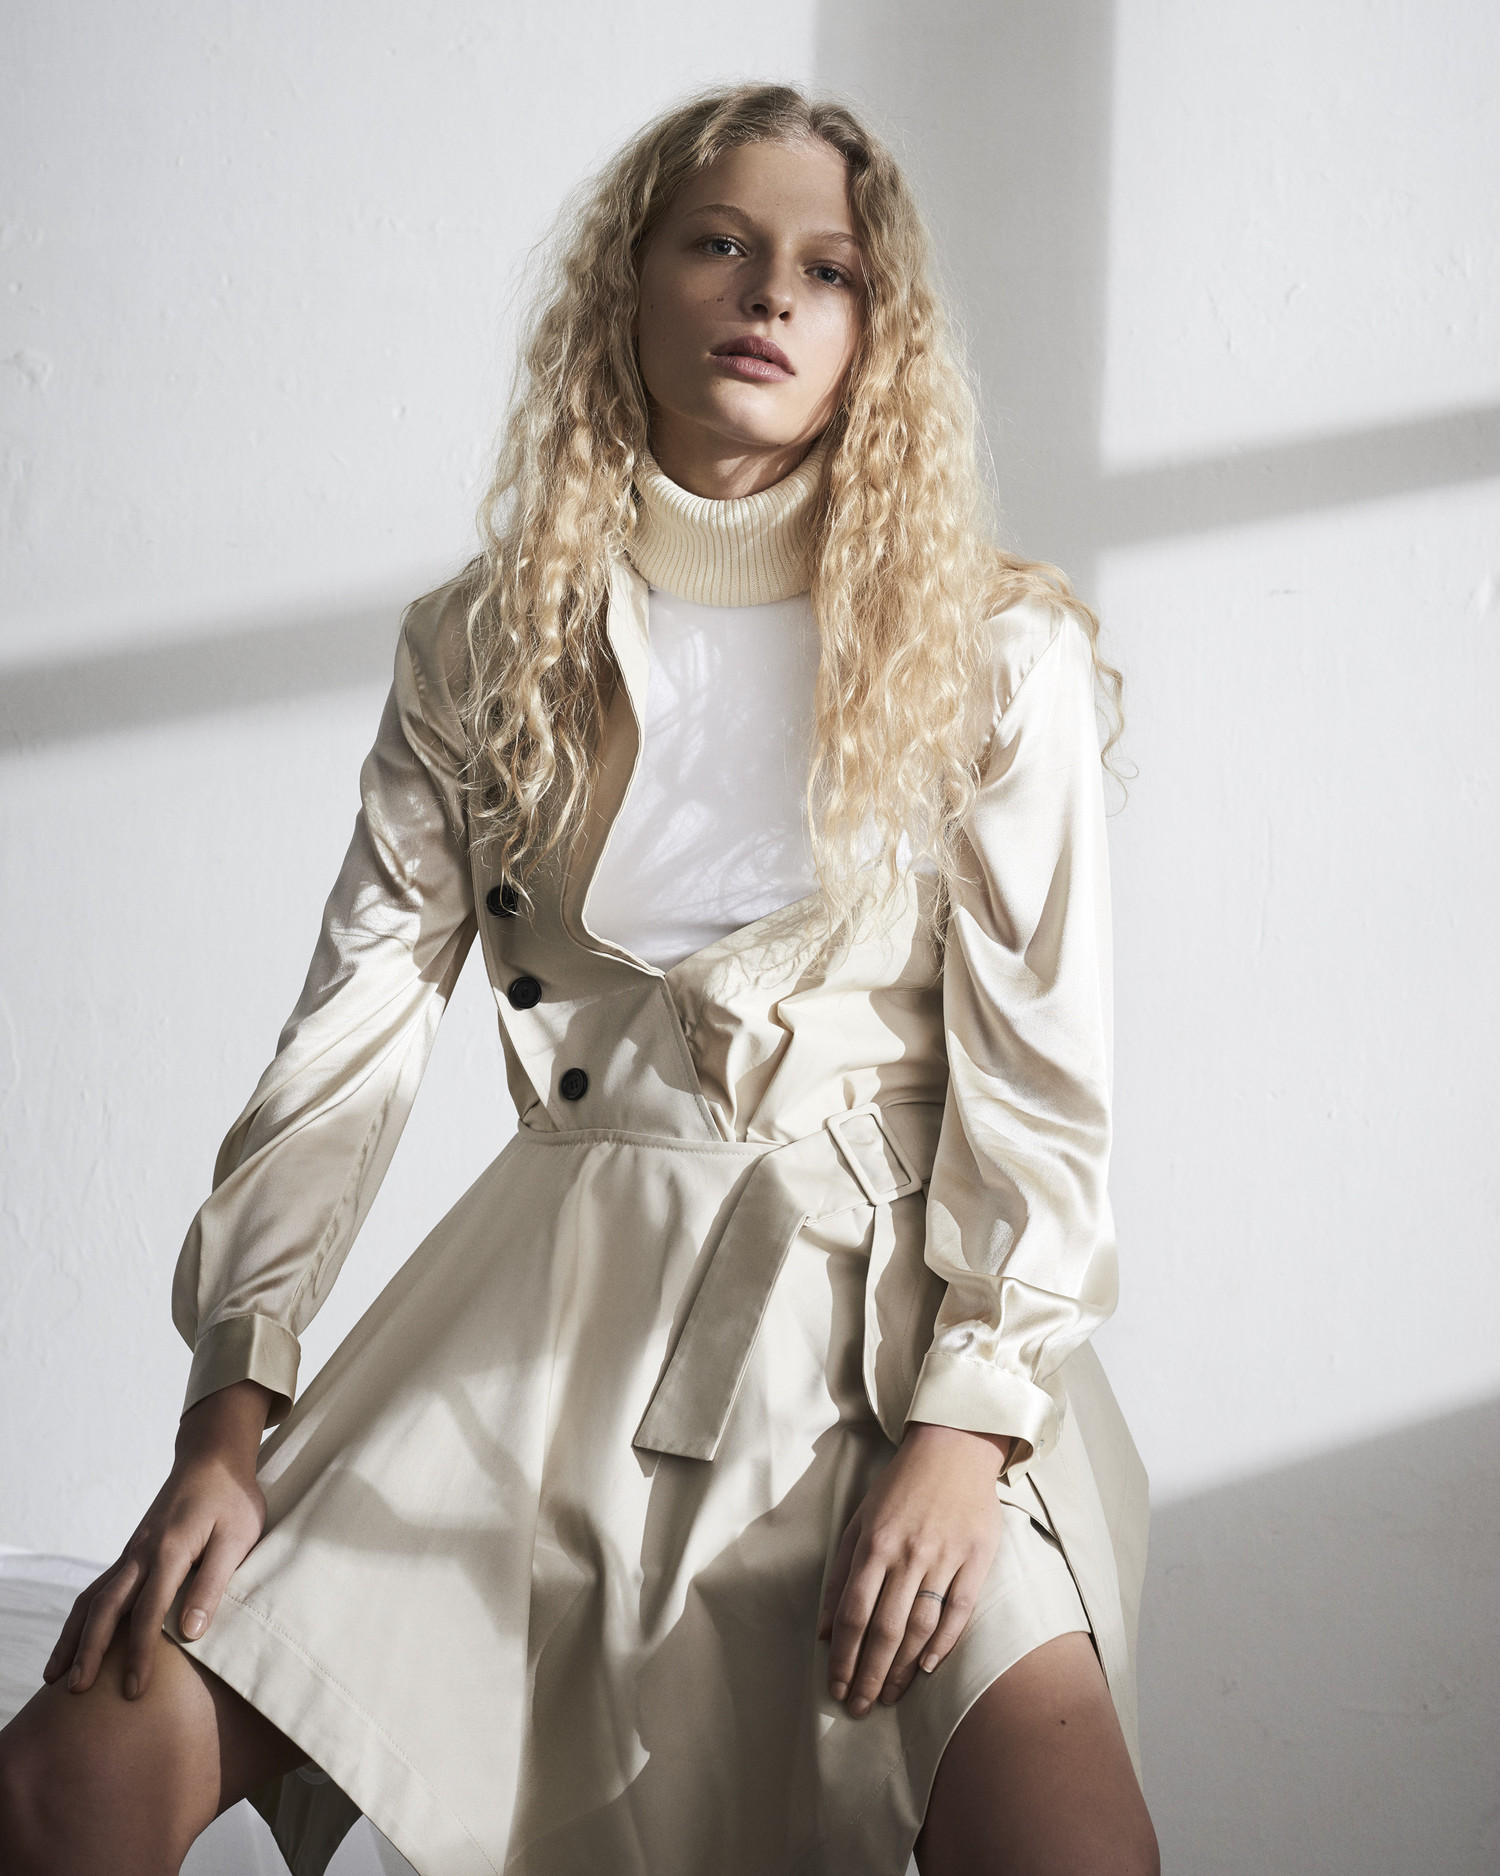 frederikke-sofie-by-hasse-nielsen-for-costume-magazine-april-2016-6